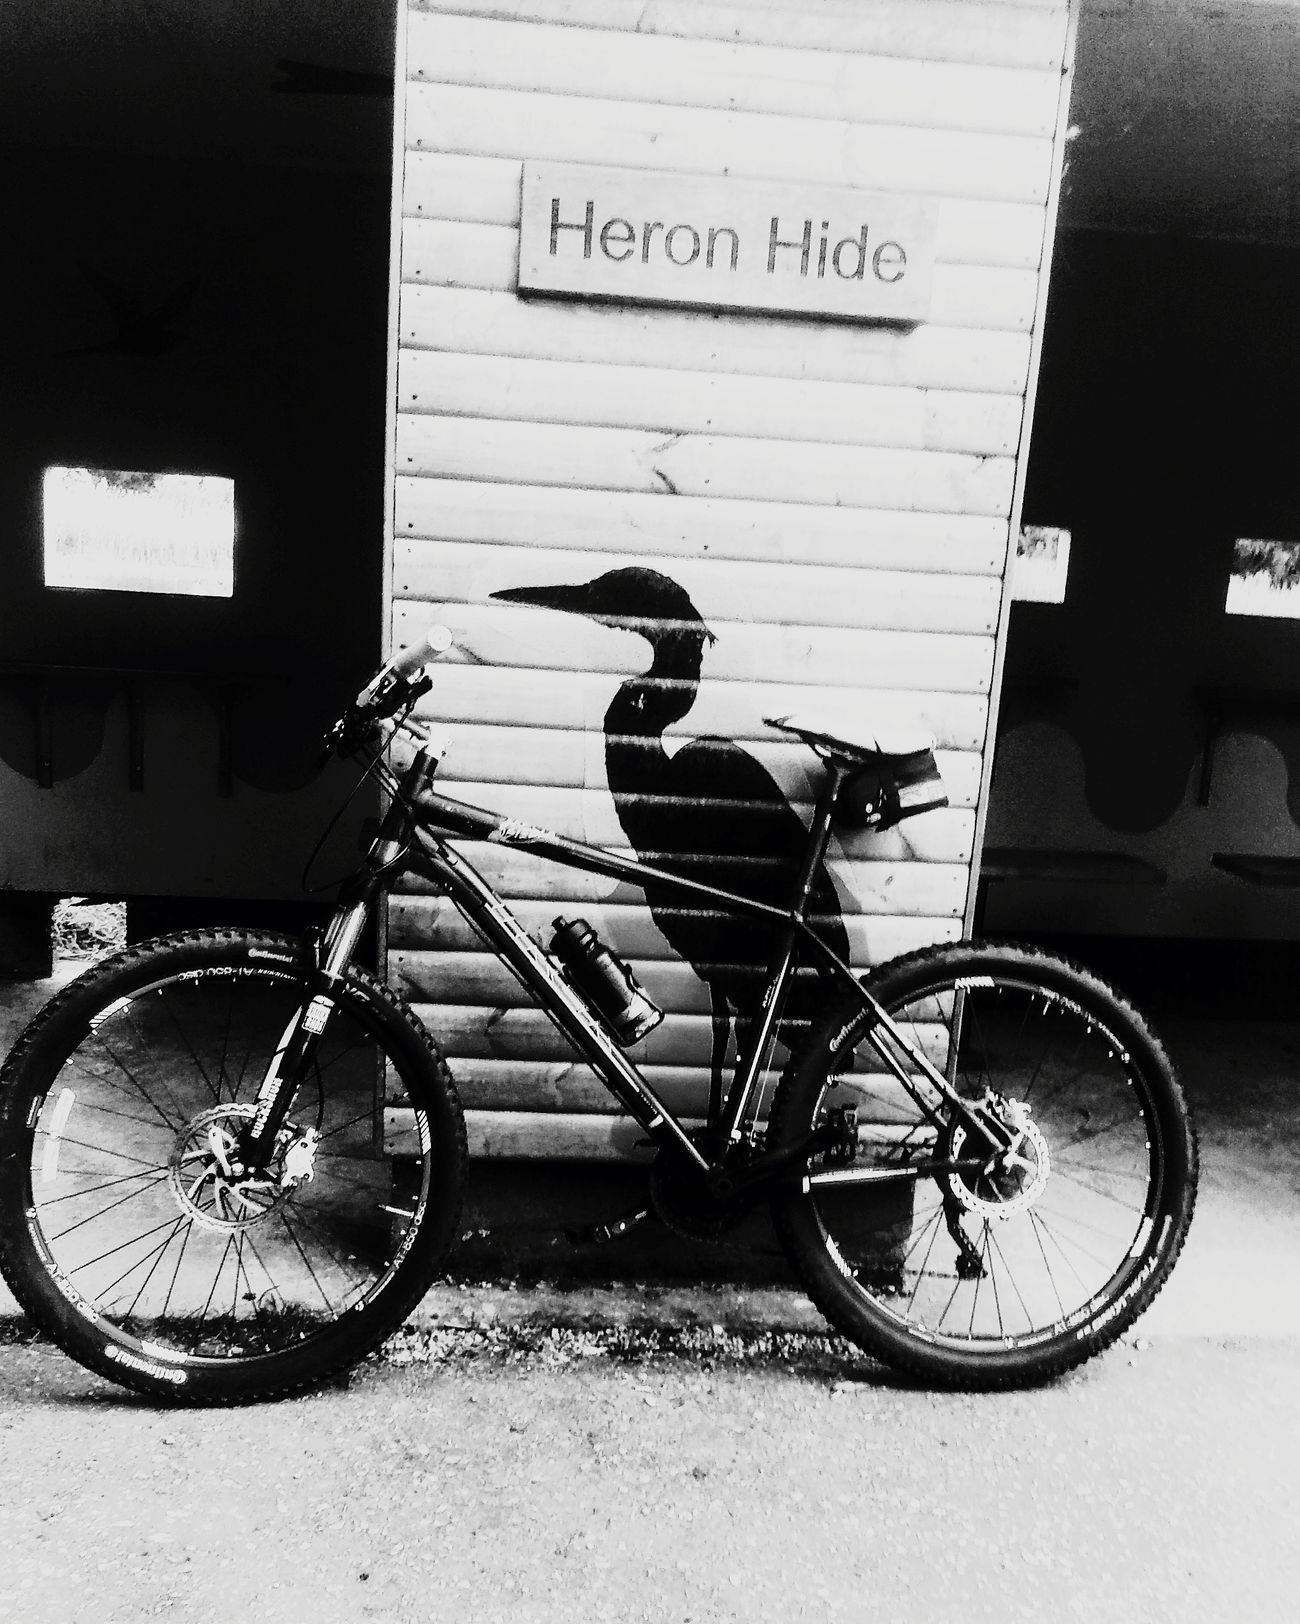 Bird on bike Bicycle Mode Of Transport No People Outdoors Black & White Simple Photography Enjoying Life Difrentstyles Birdphotography Beauty In Nature On Bike Trip Relaxing Western Script Text Transportation Land Vehicle Communication Day Stationary